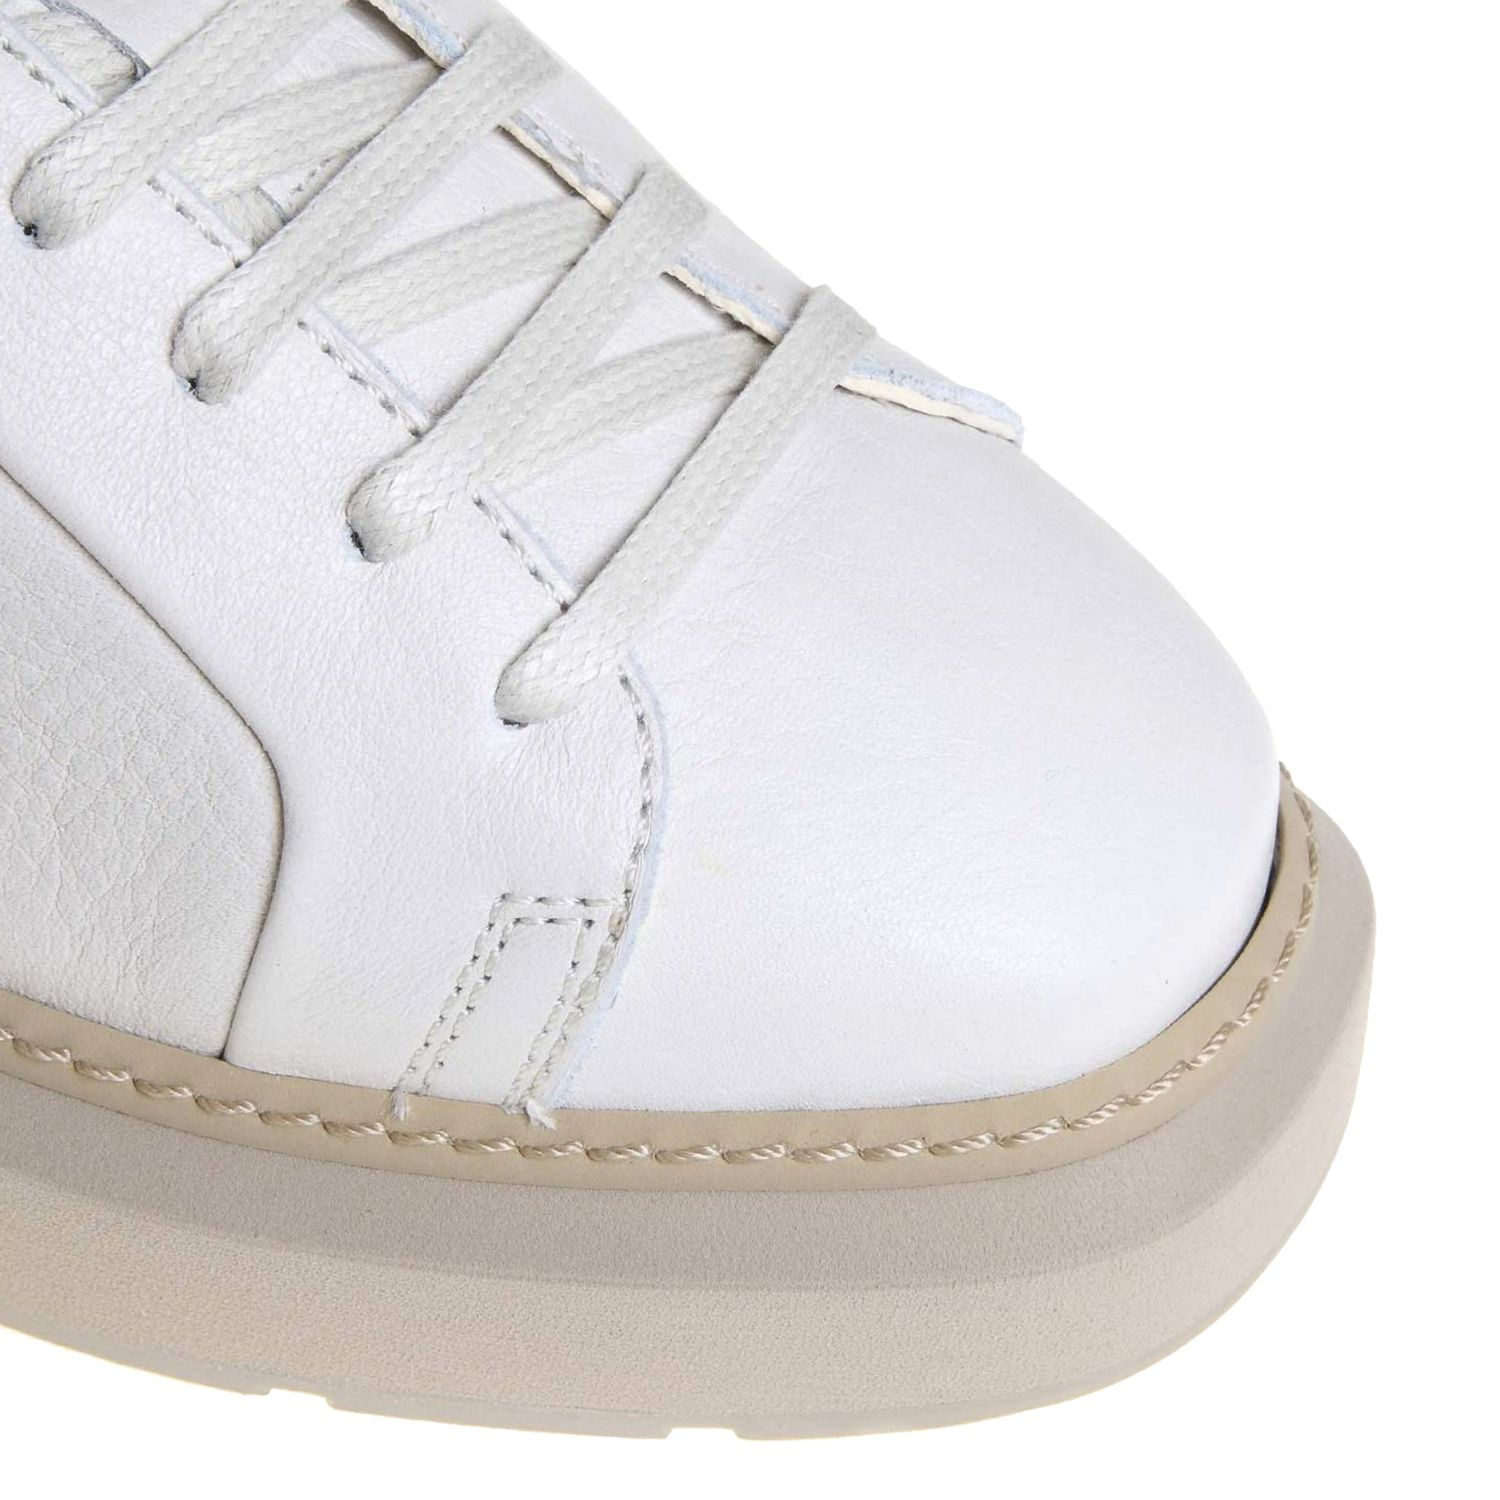 Sneakers Manuel Barcelò: Sneakers women Manuel BarcelÒ white 4